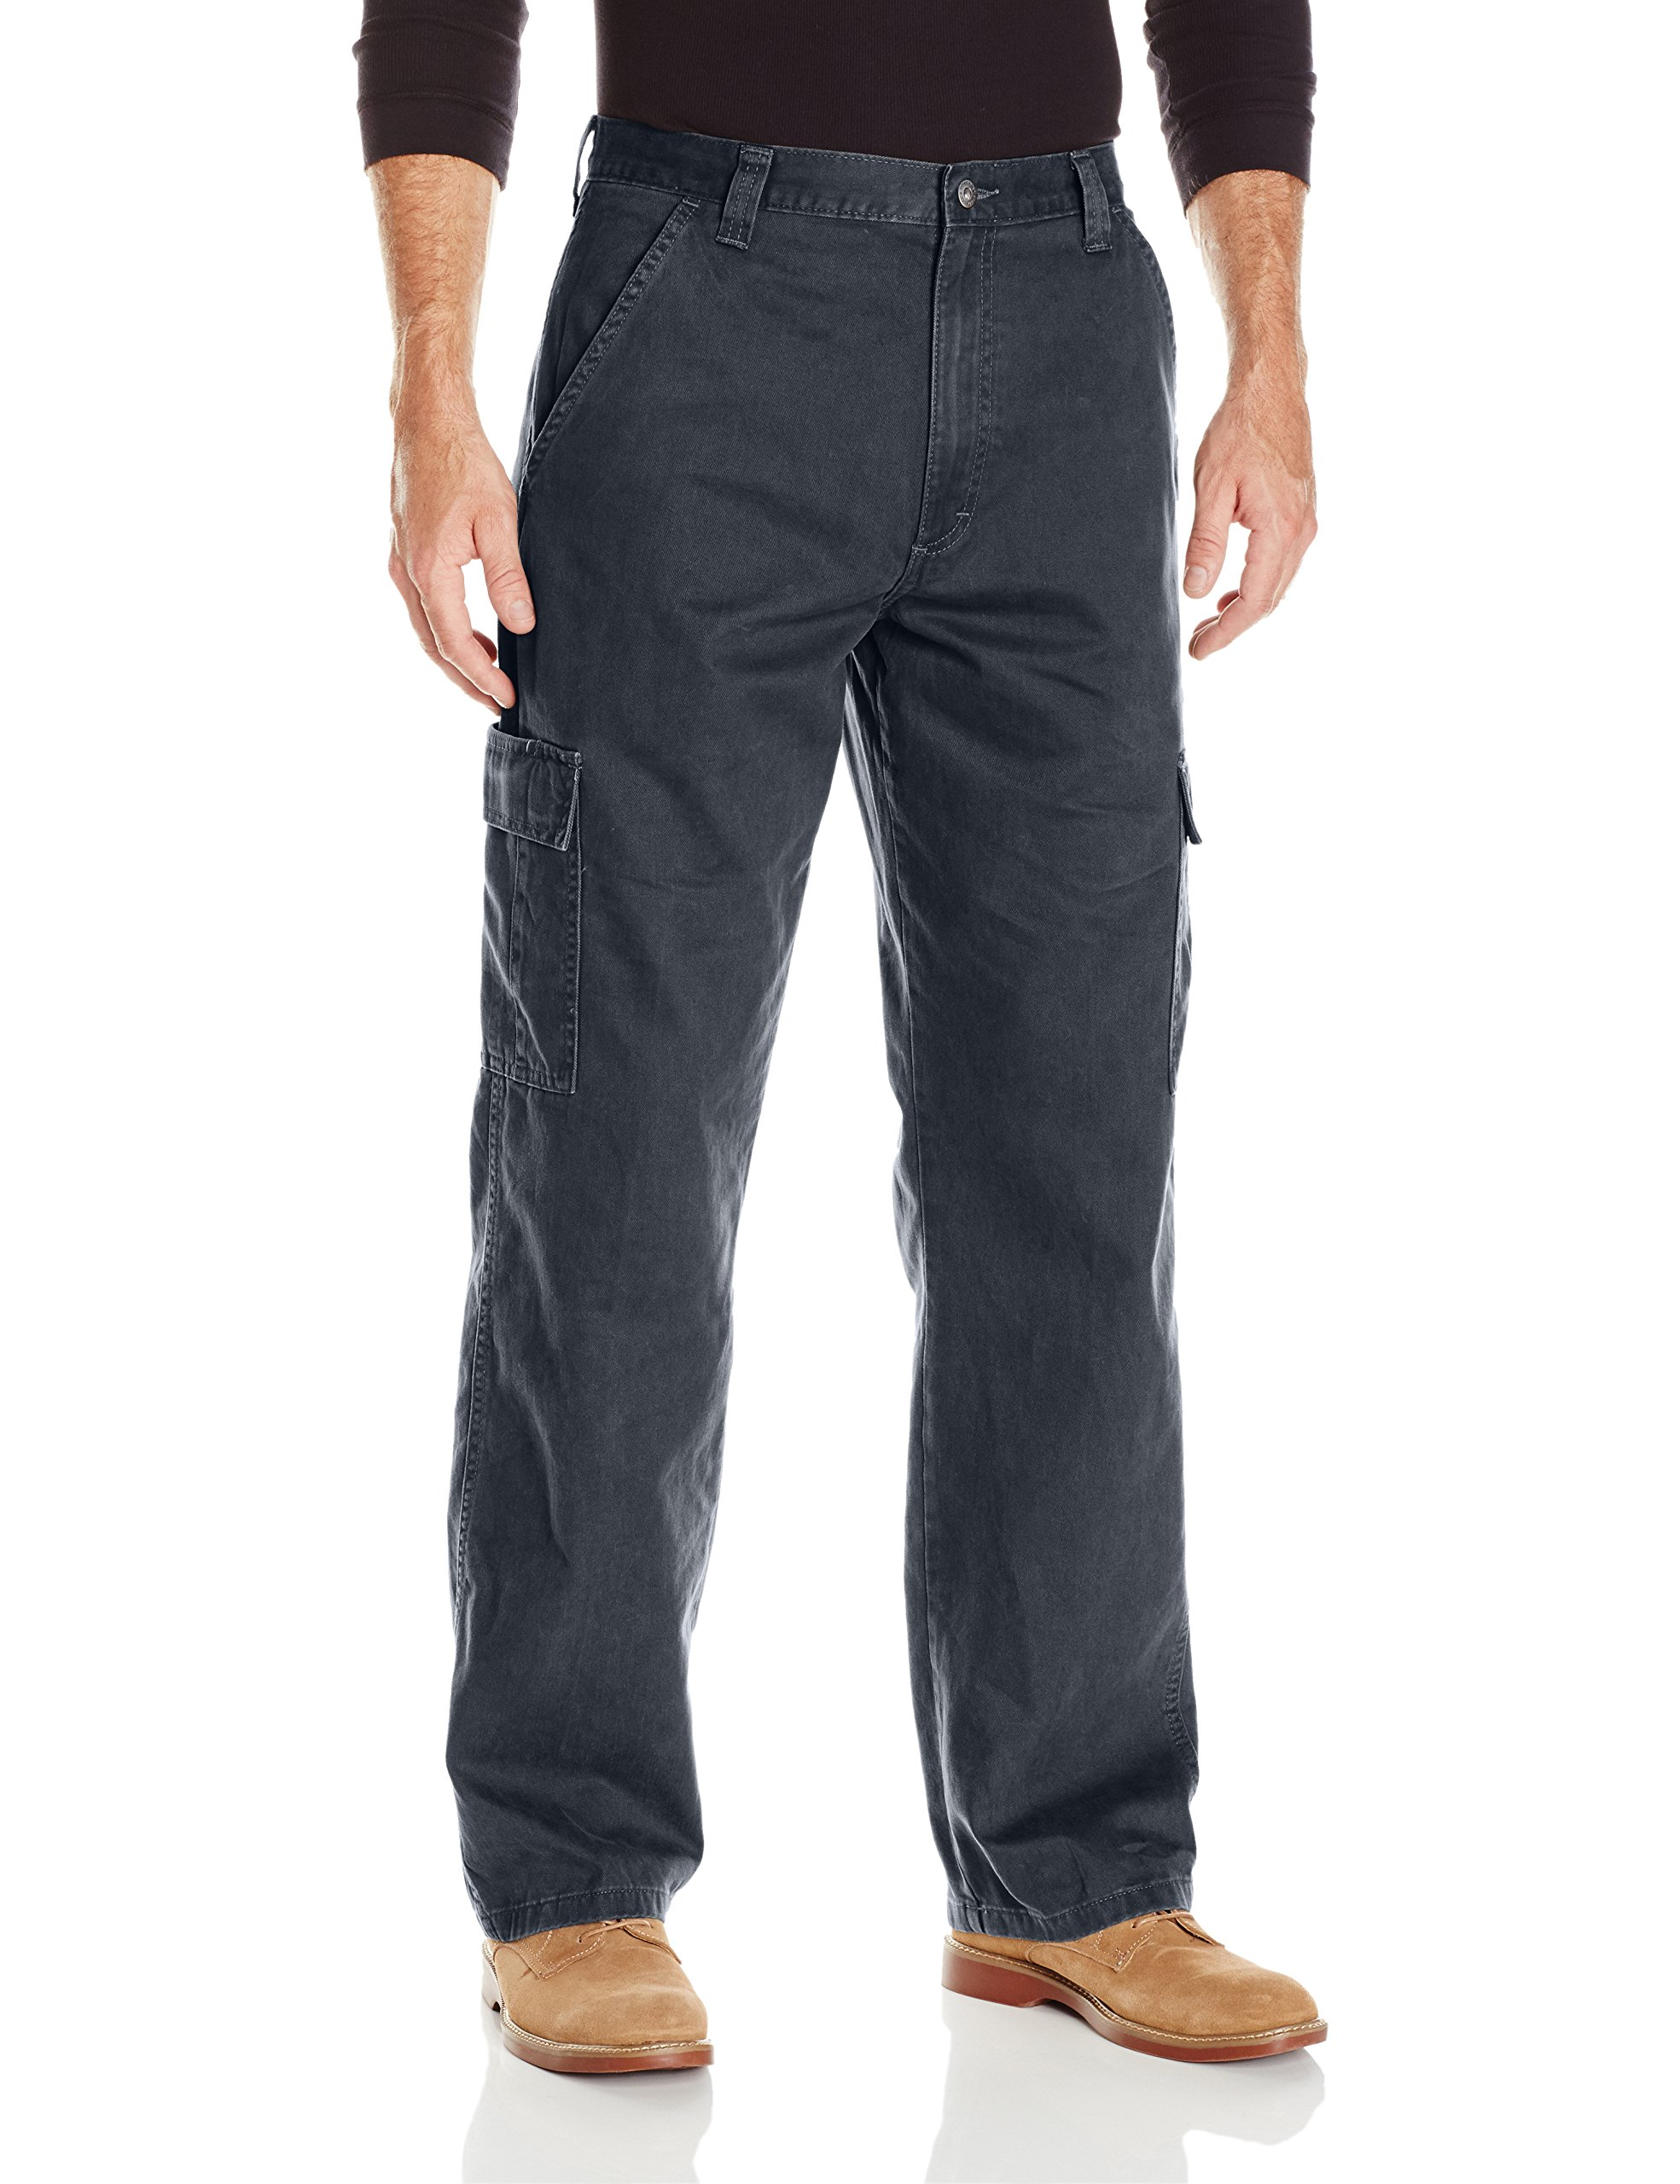 48c32220127a5f Galleon - Wrangler Authentics Men's Classic Twill Relaxed Fit Cargo Pant,  Navy Ripstop 38 X 32